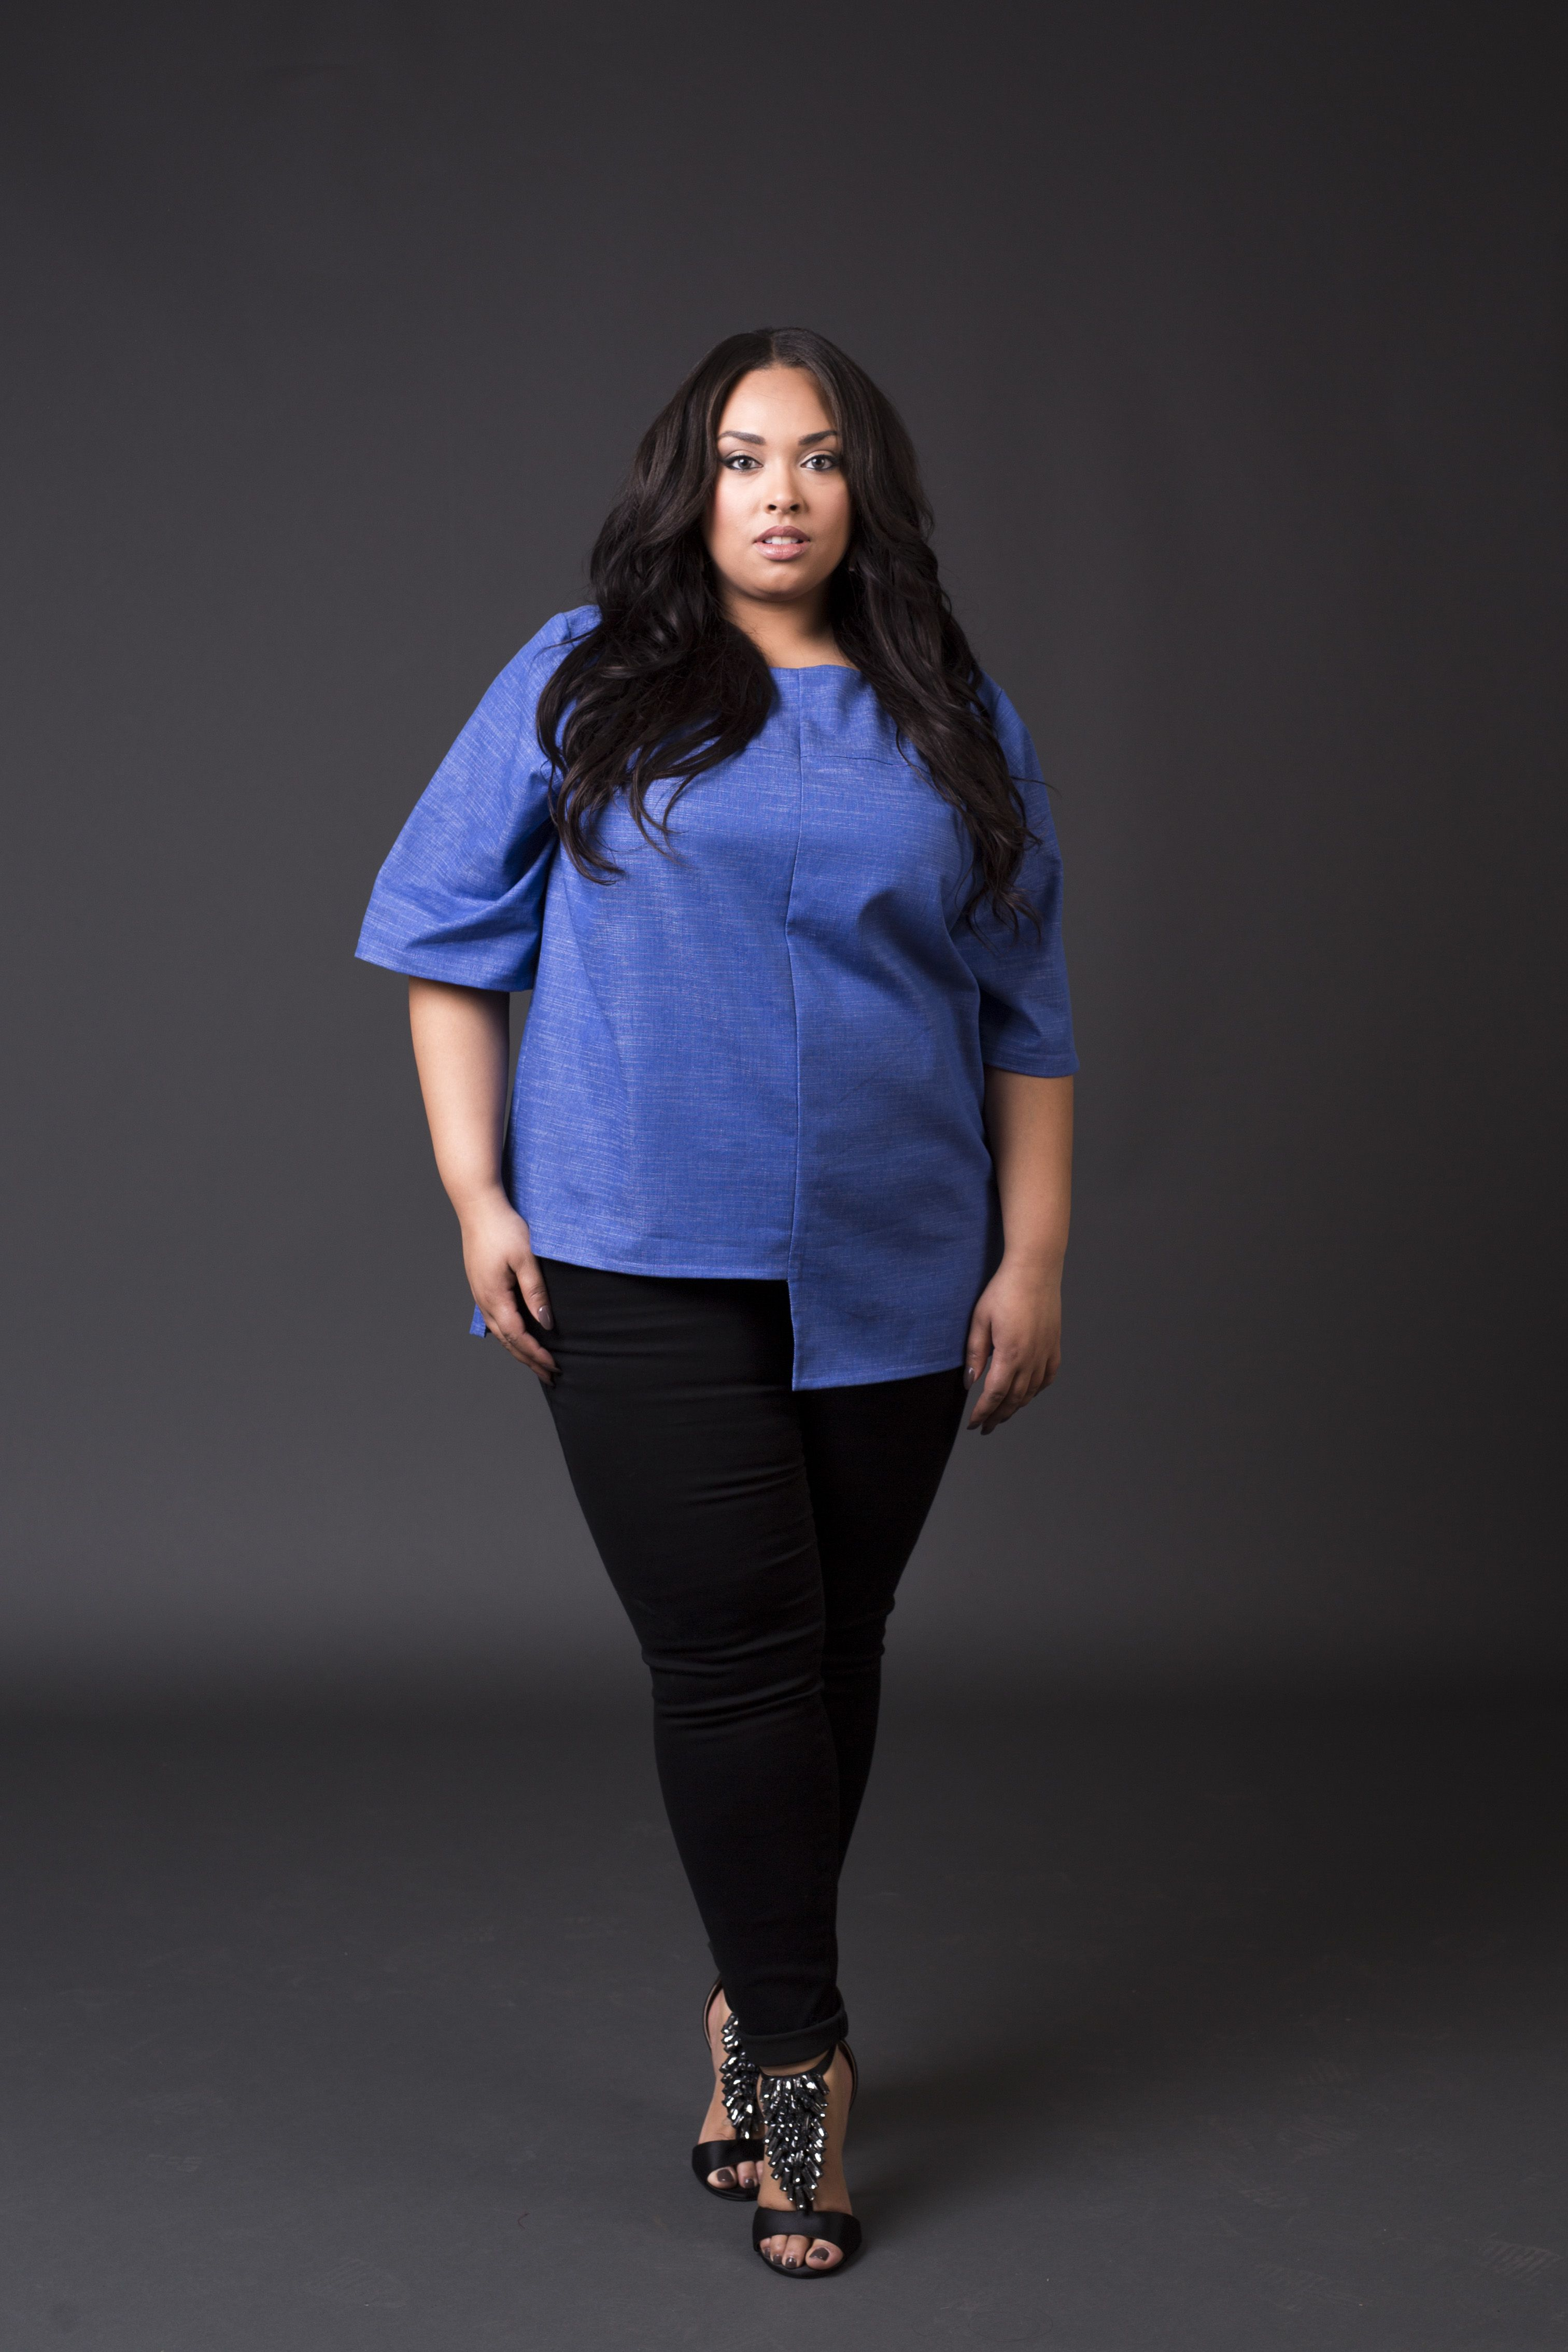 1bc6c422159e9 Plus Size Fashion · Curvy · Wardrobe Staples · Did you see us in   refinery29  http   www.refinery29.